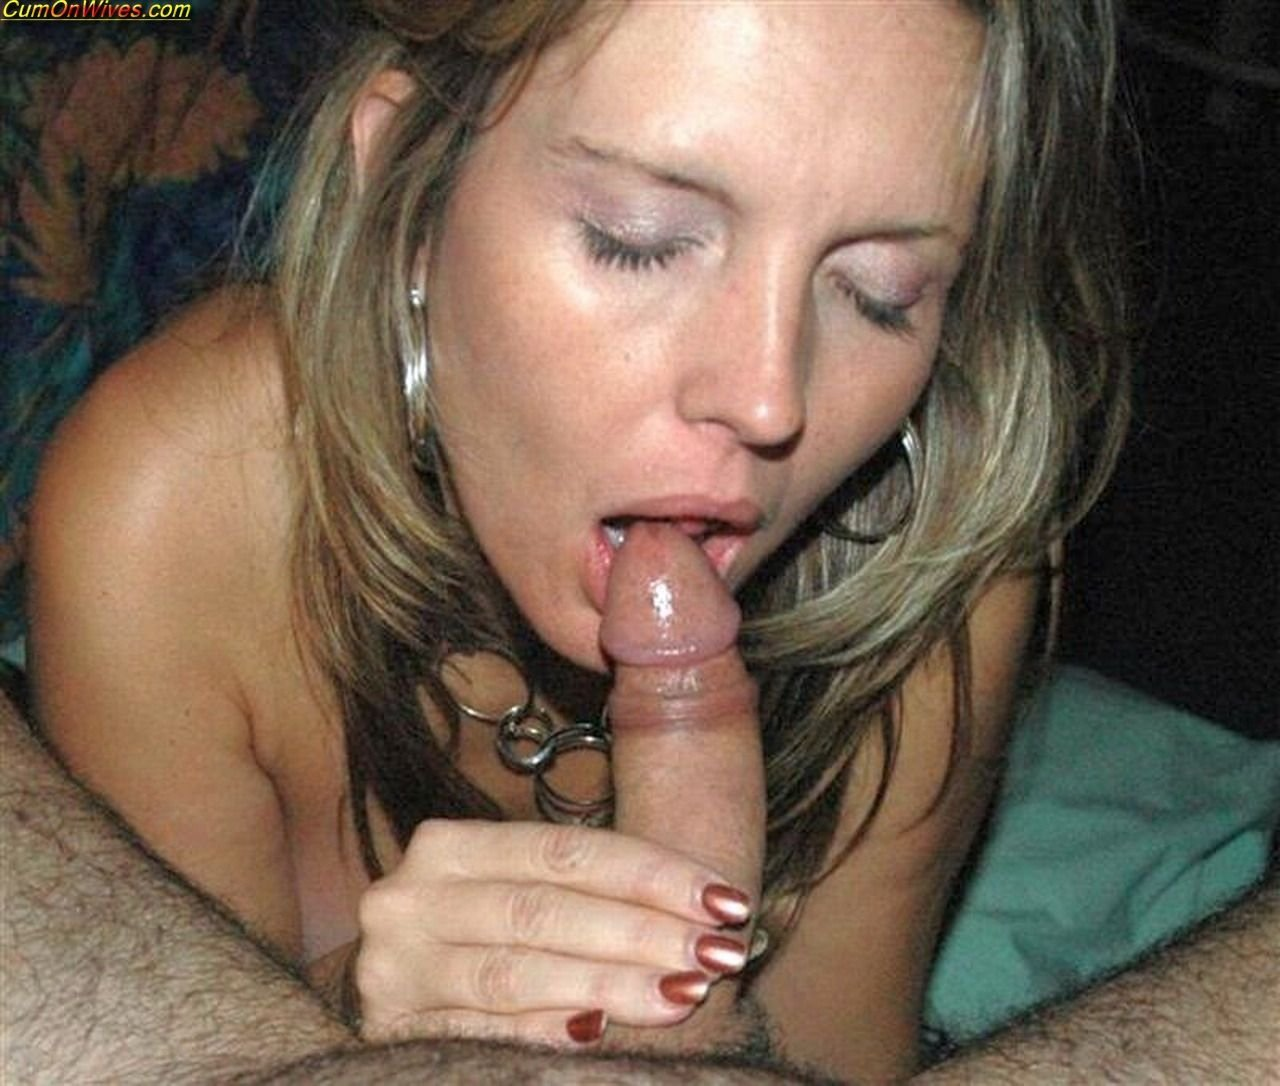 old woman handjob tube